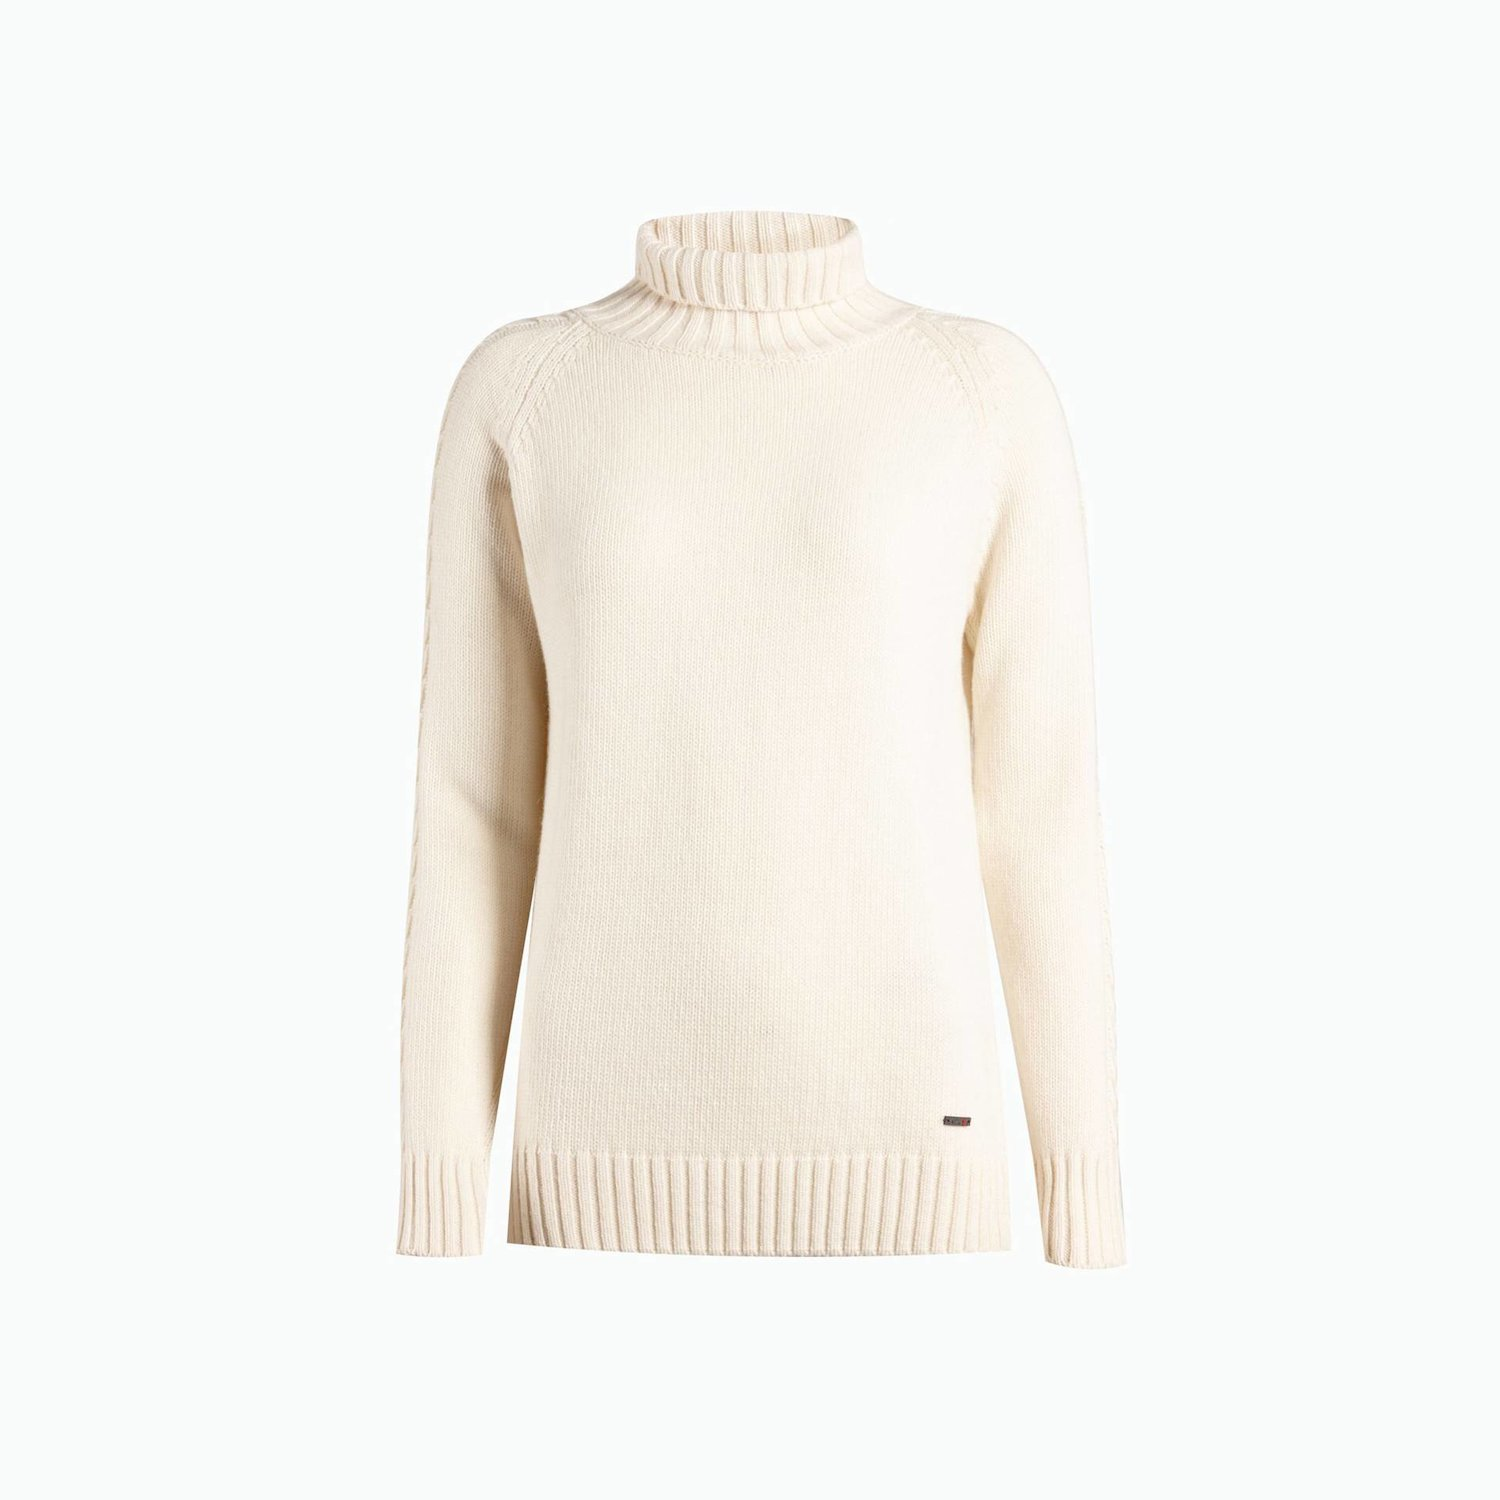 B112 Jumper - Sail White